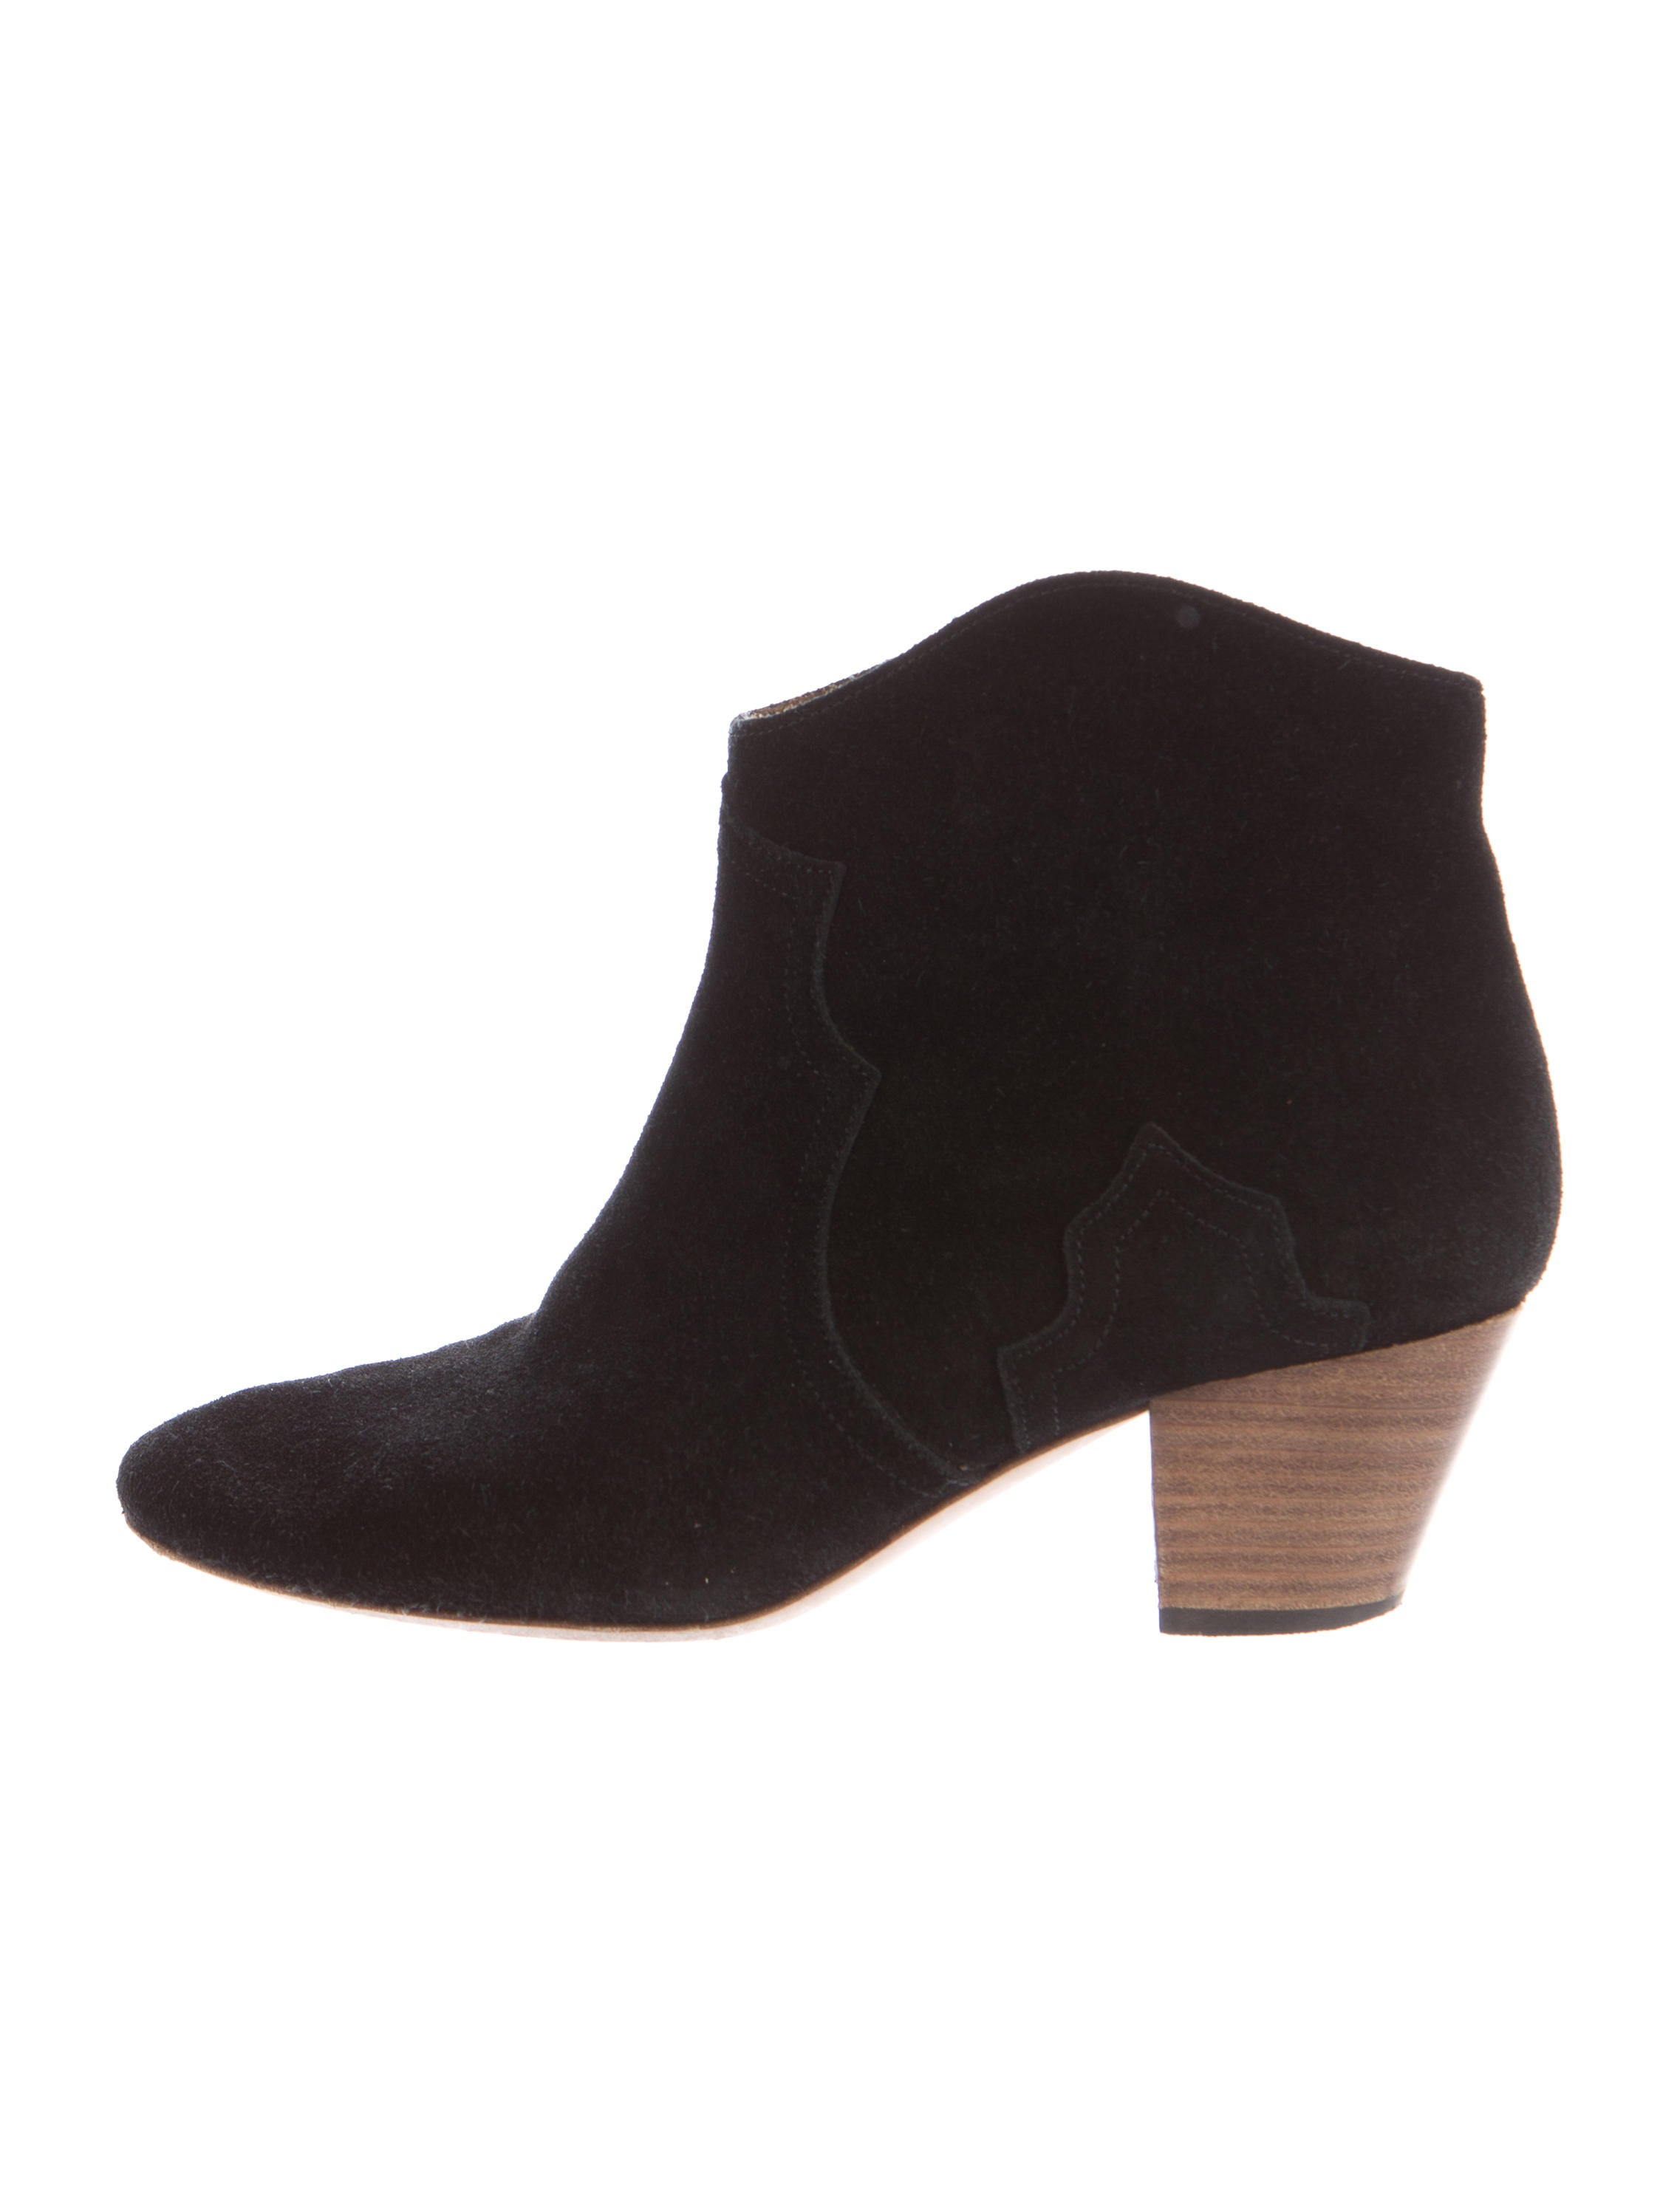 marant dicker suede ankle boots shoes isa40022